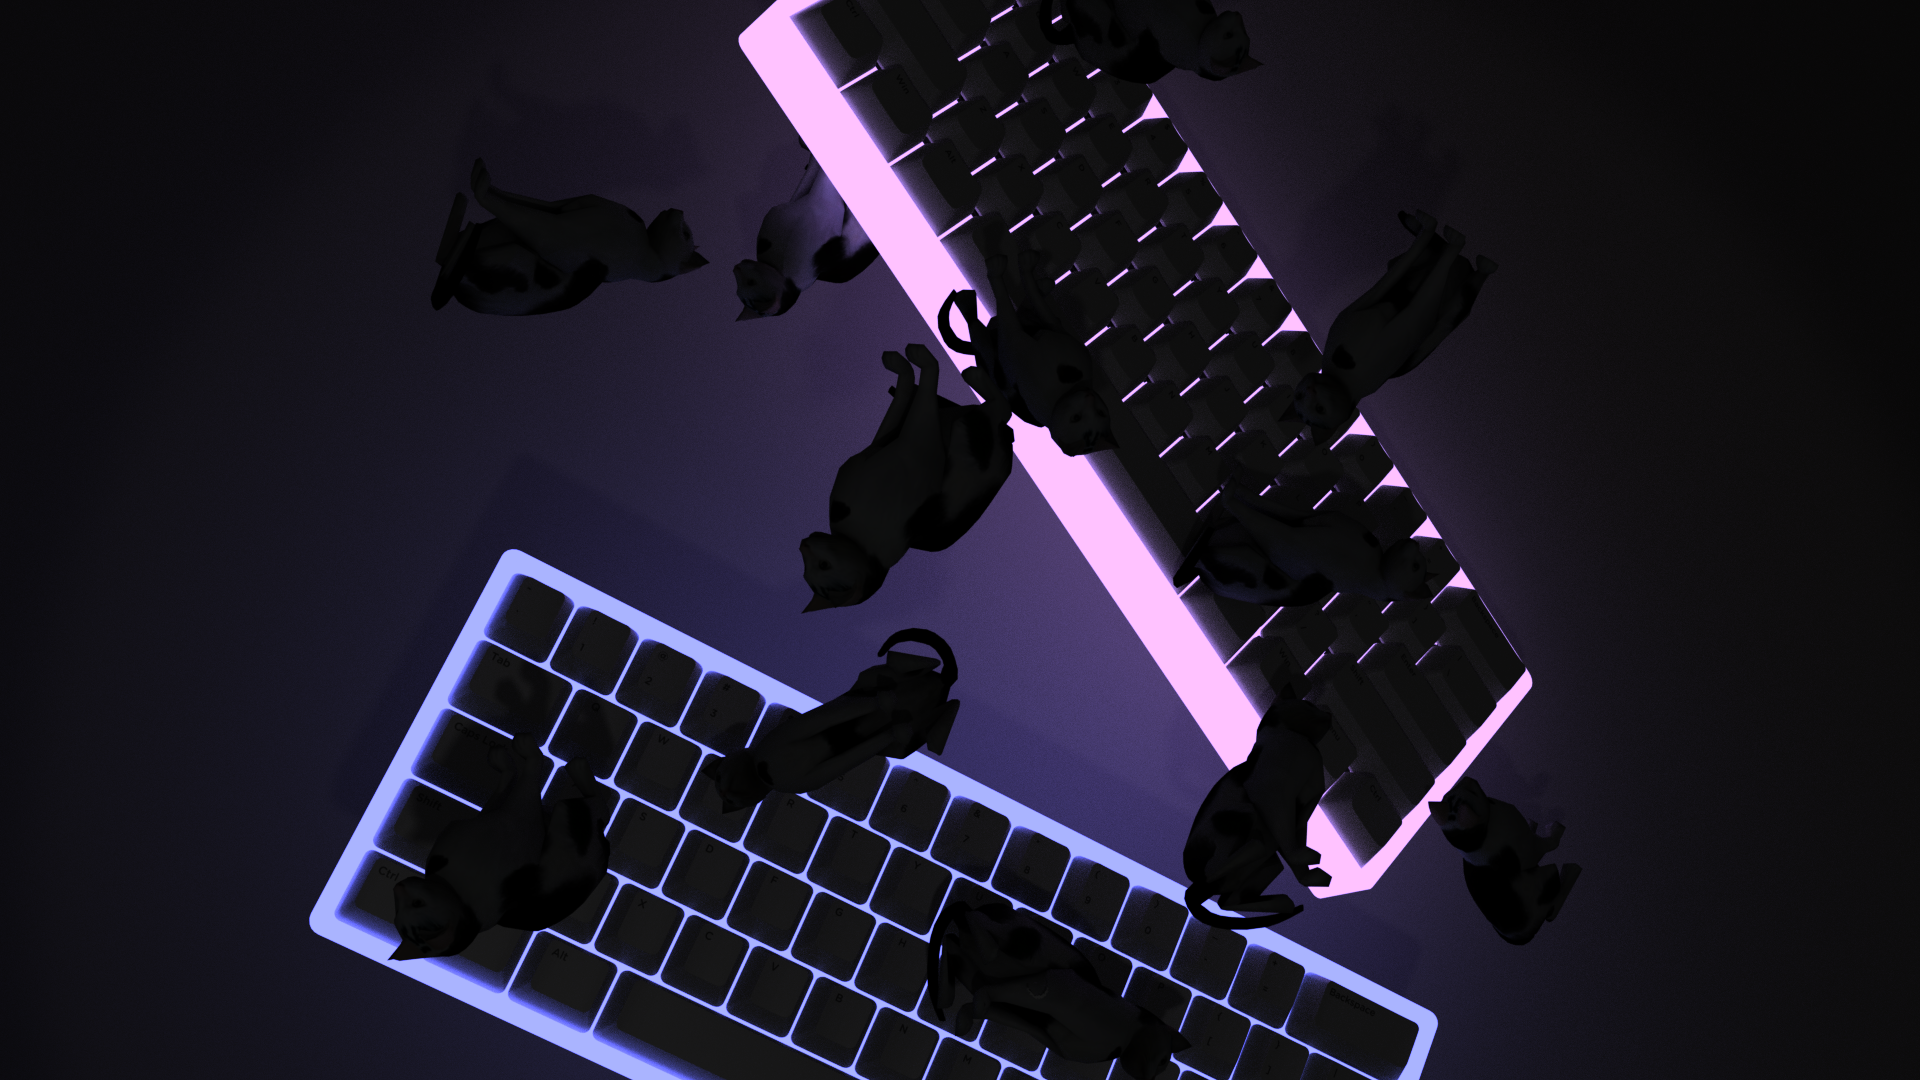 60 Keyboards falling with cats aesthetic 4K Wallpaper   Imgur 1920x1080